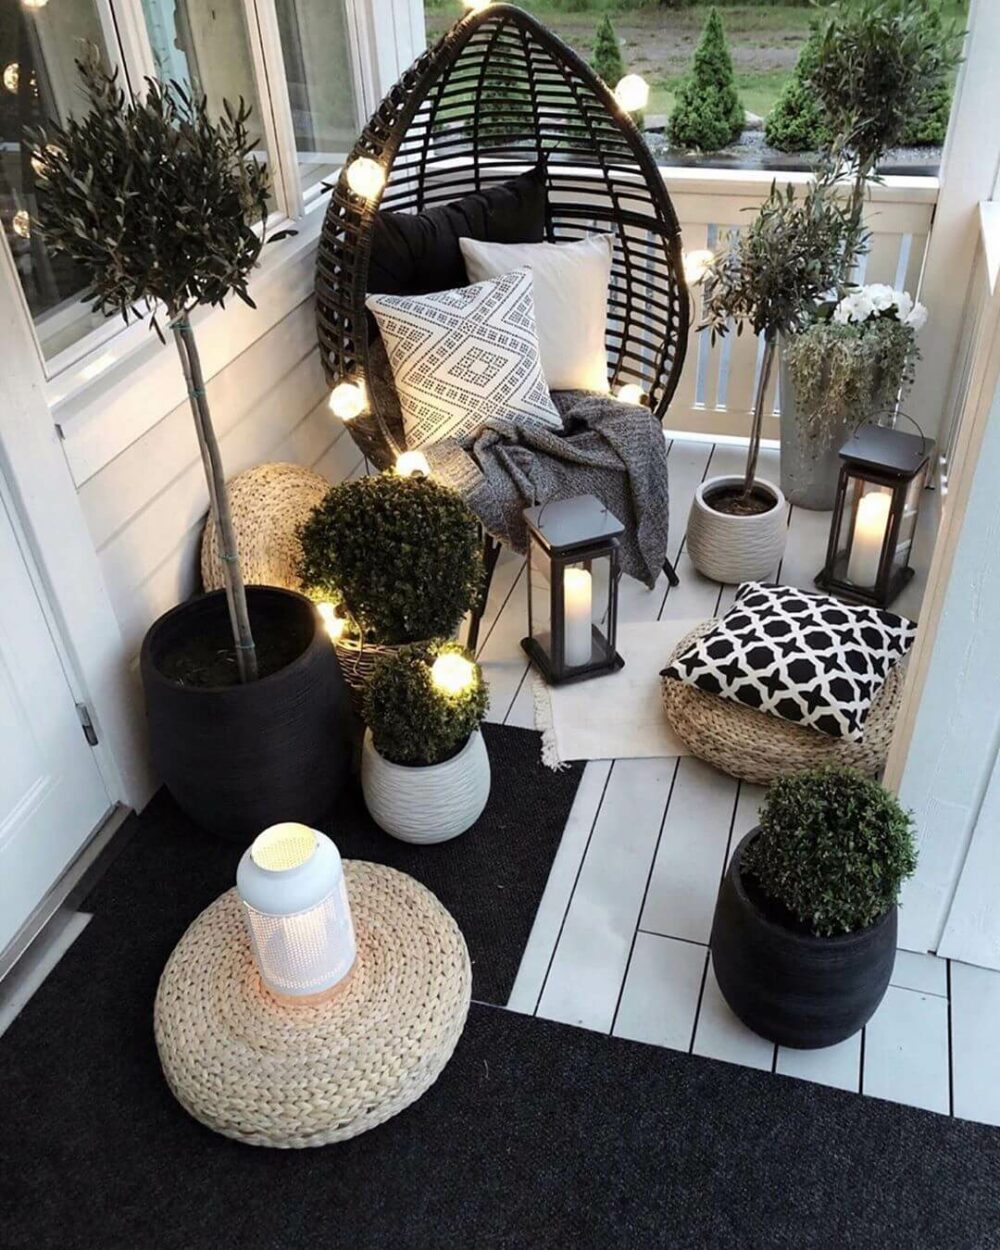 balcony garden decor ideas